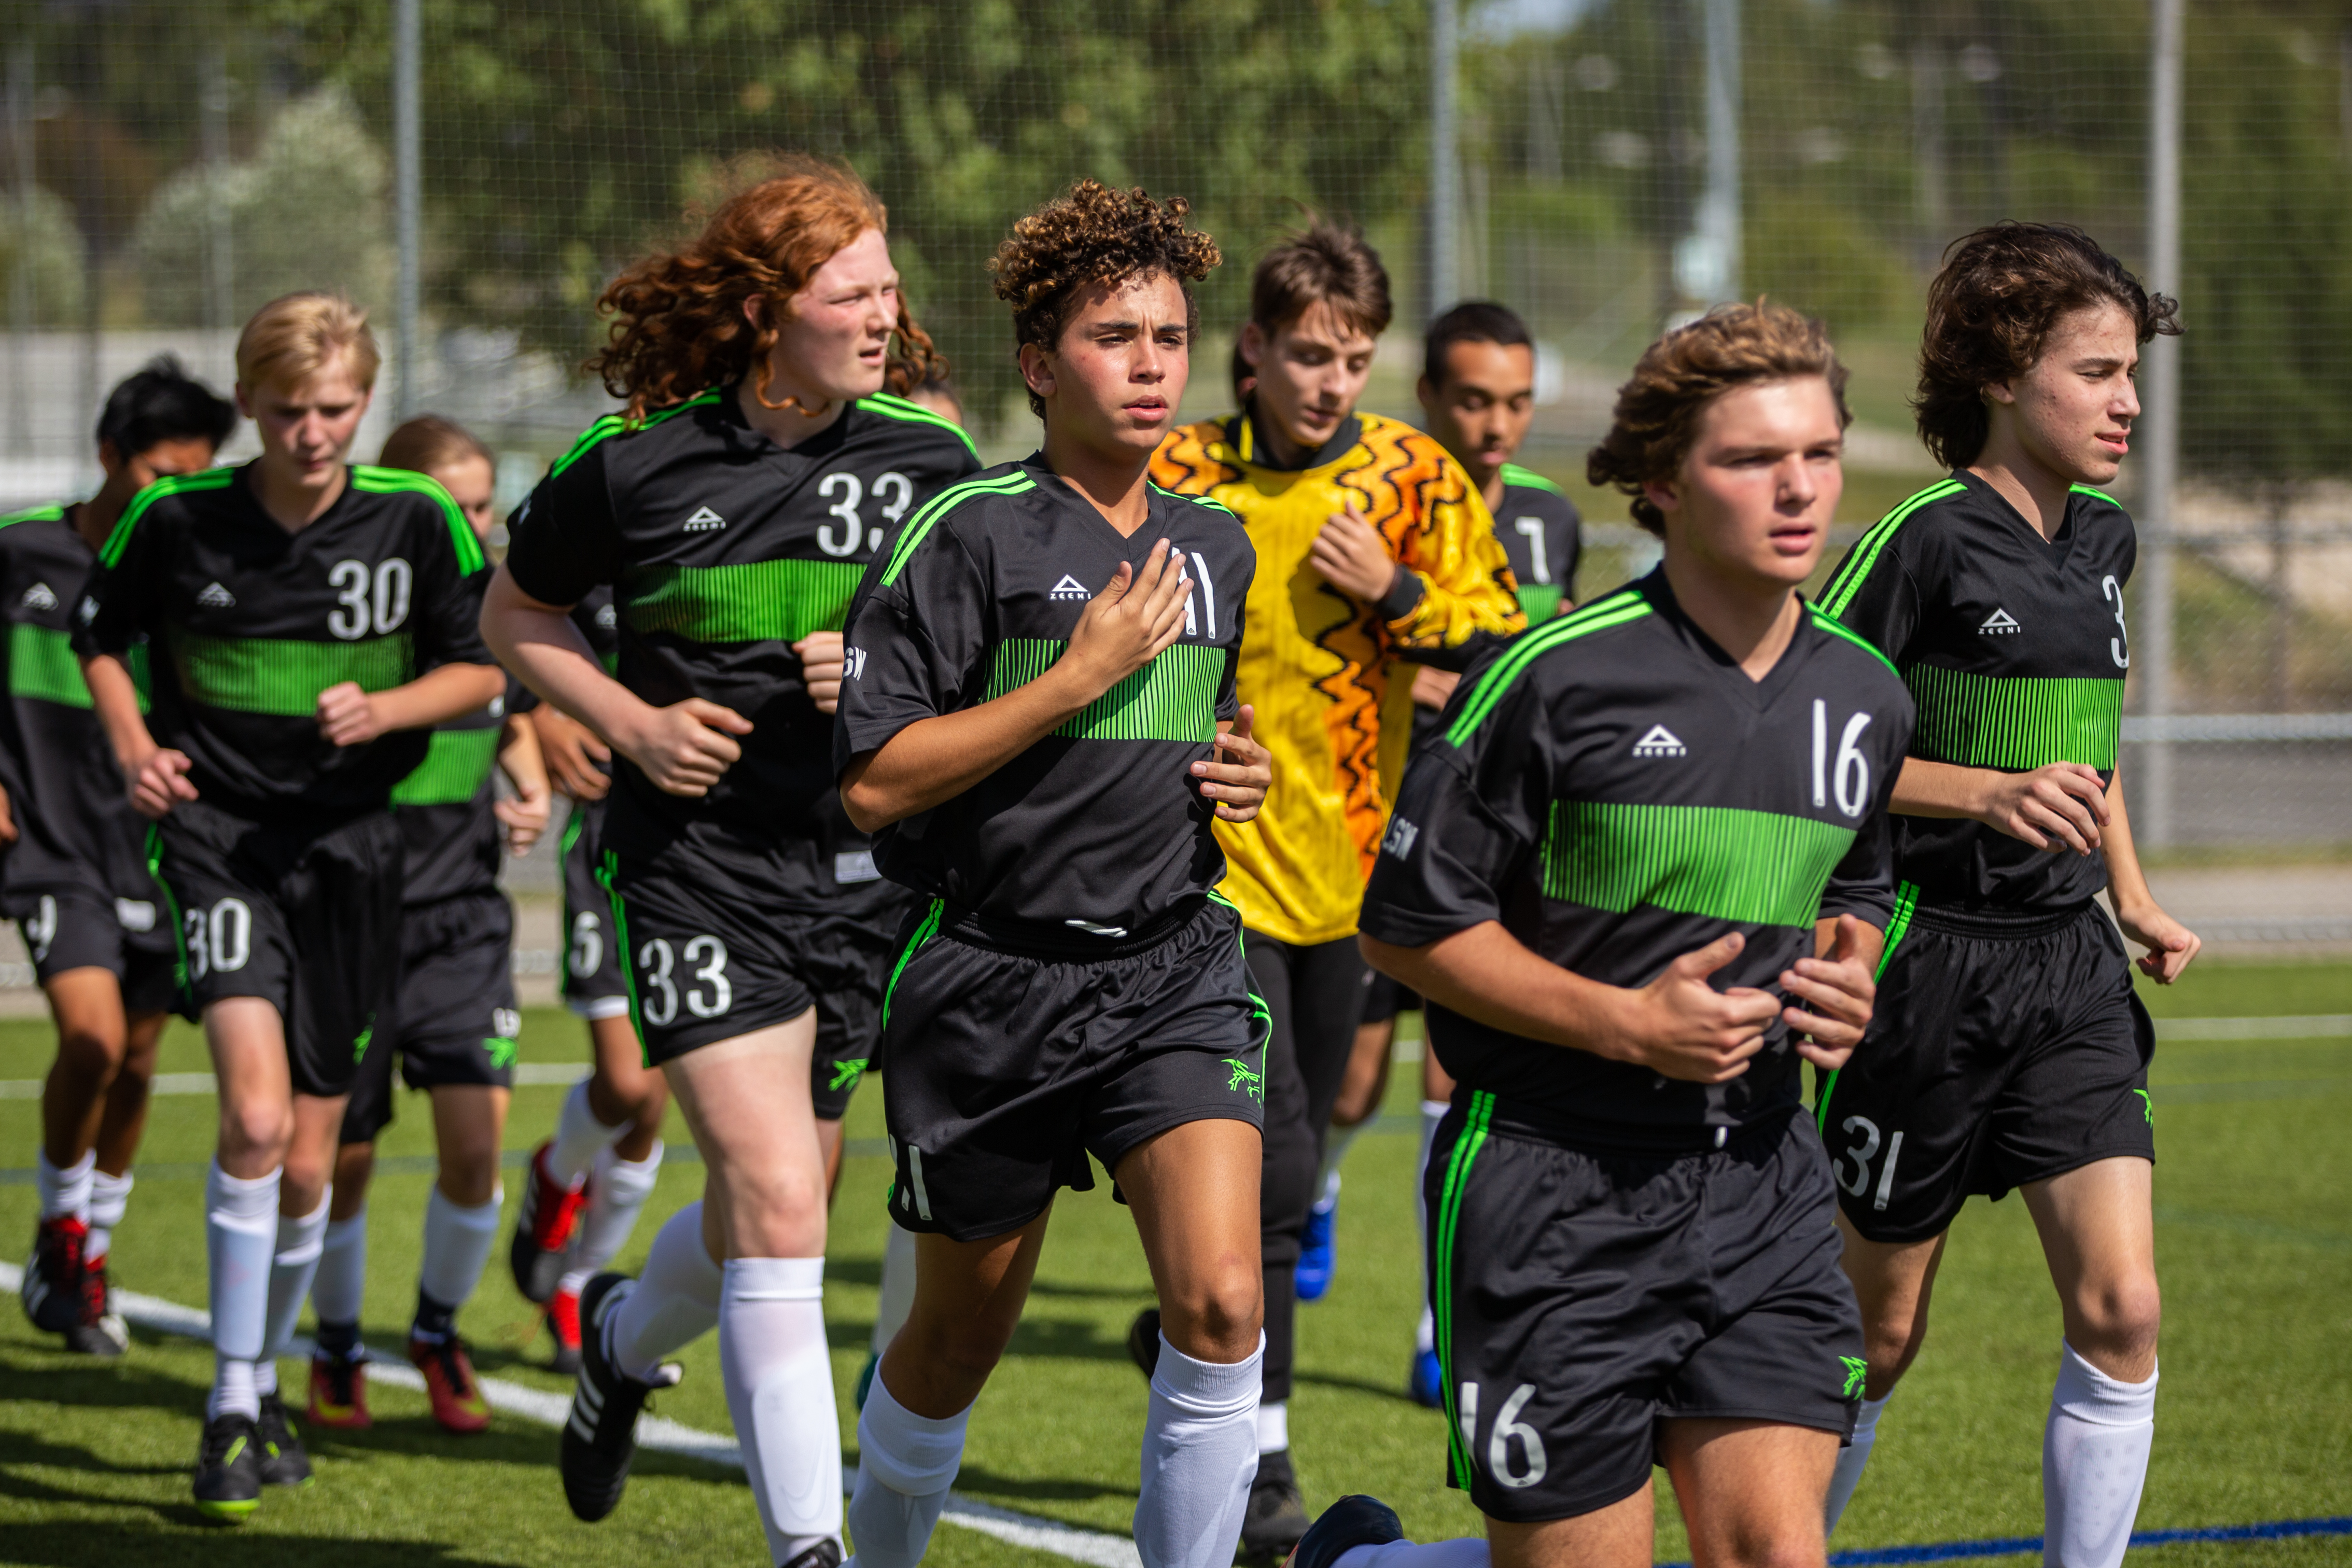 Soccer team running